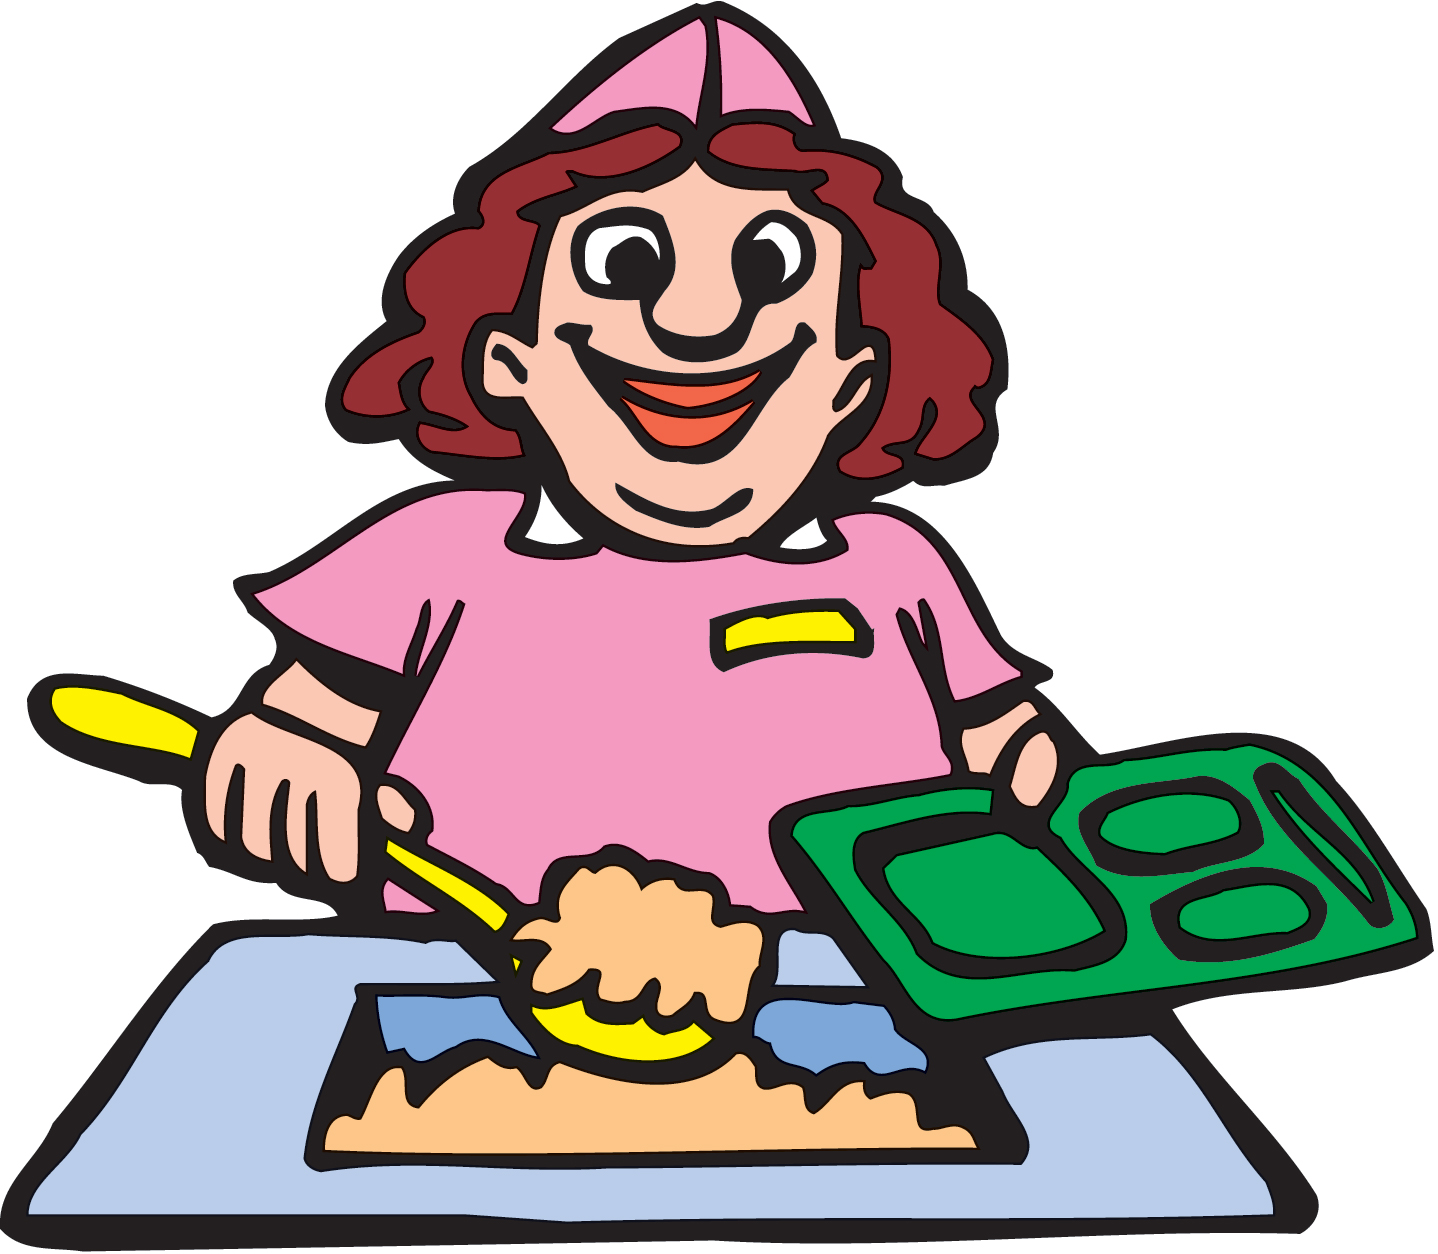 Lunch tray woman clipart lunch pencil and in color woman